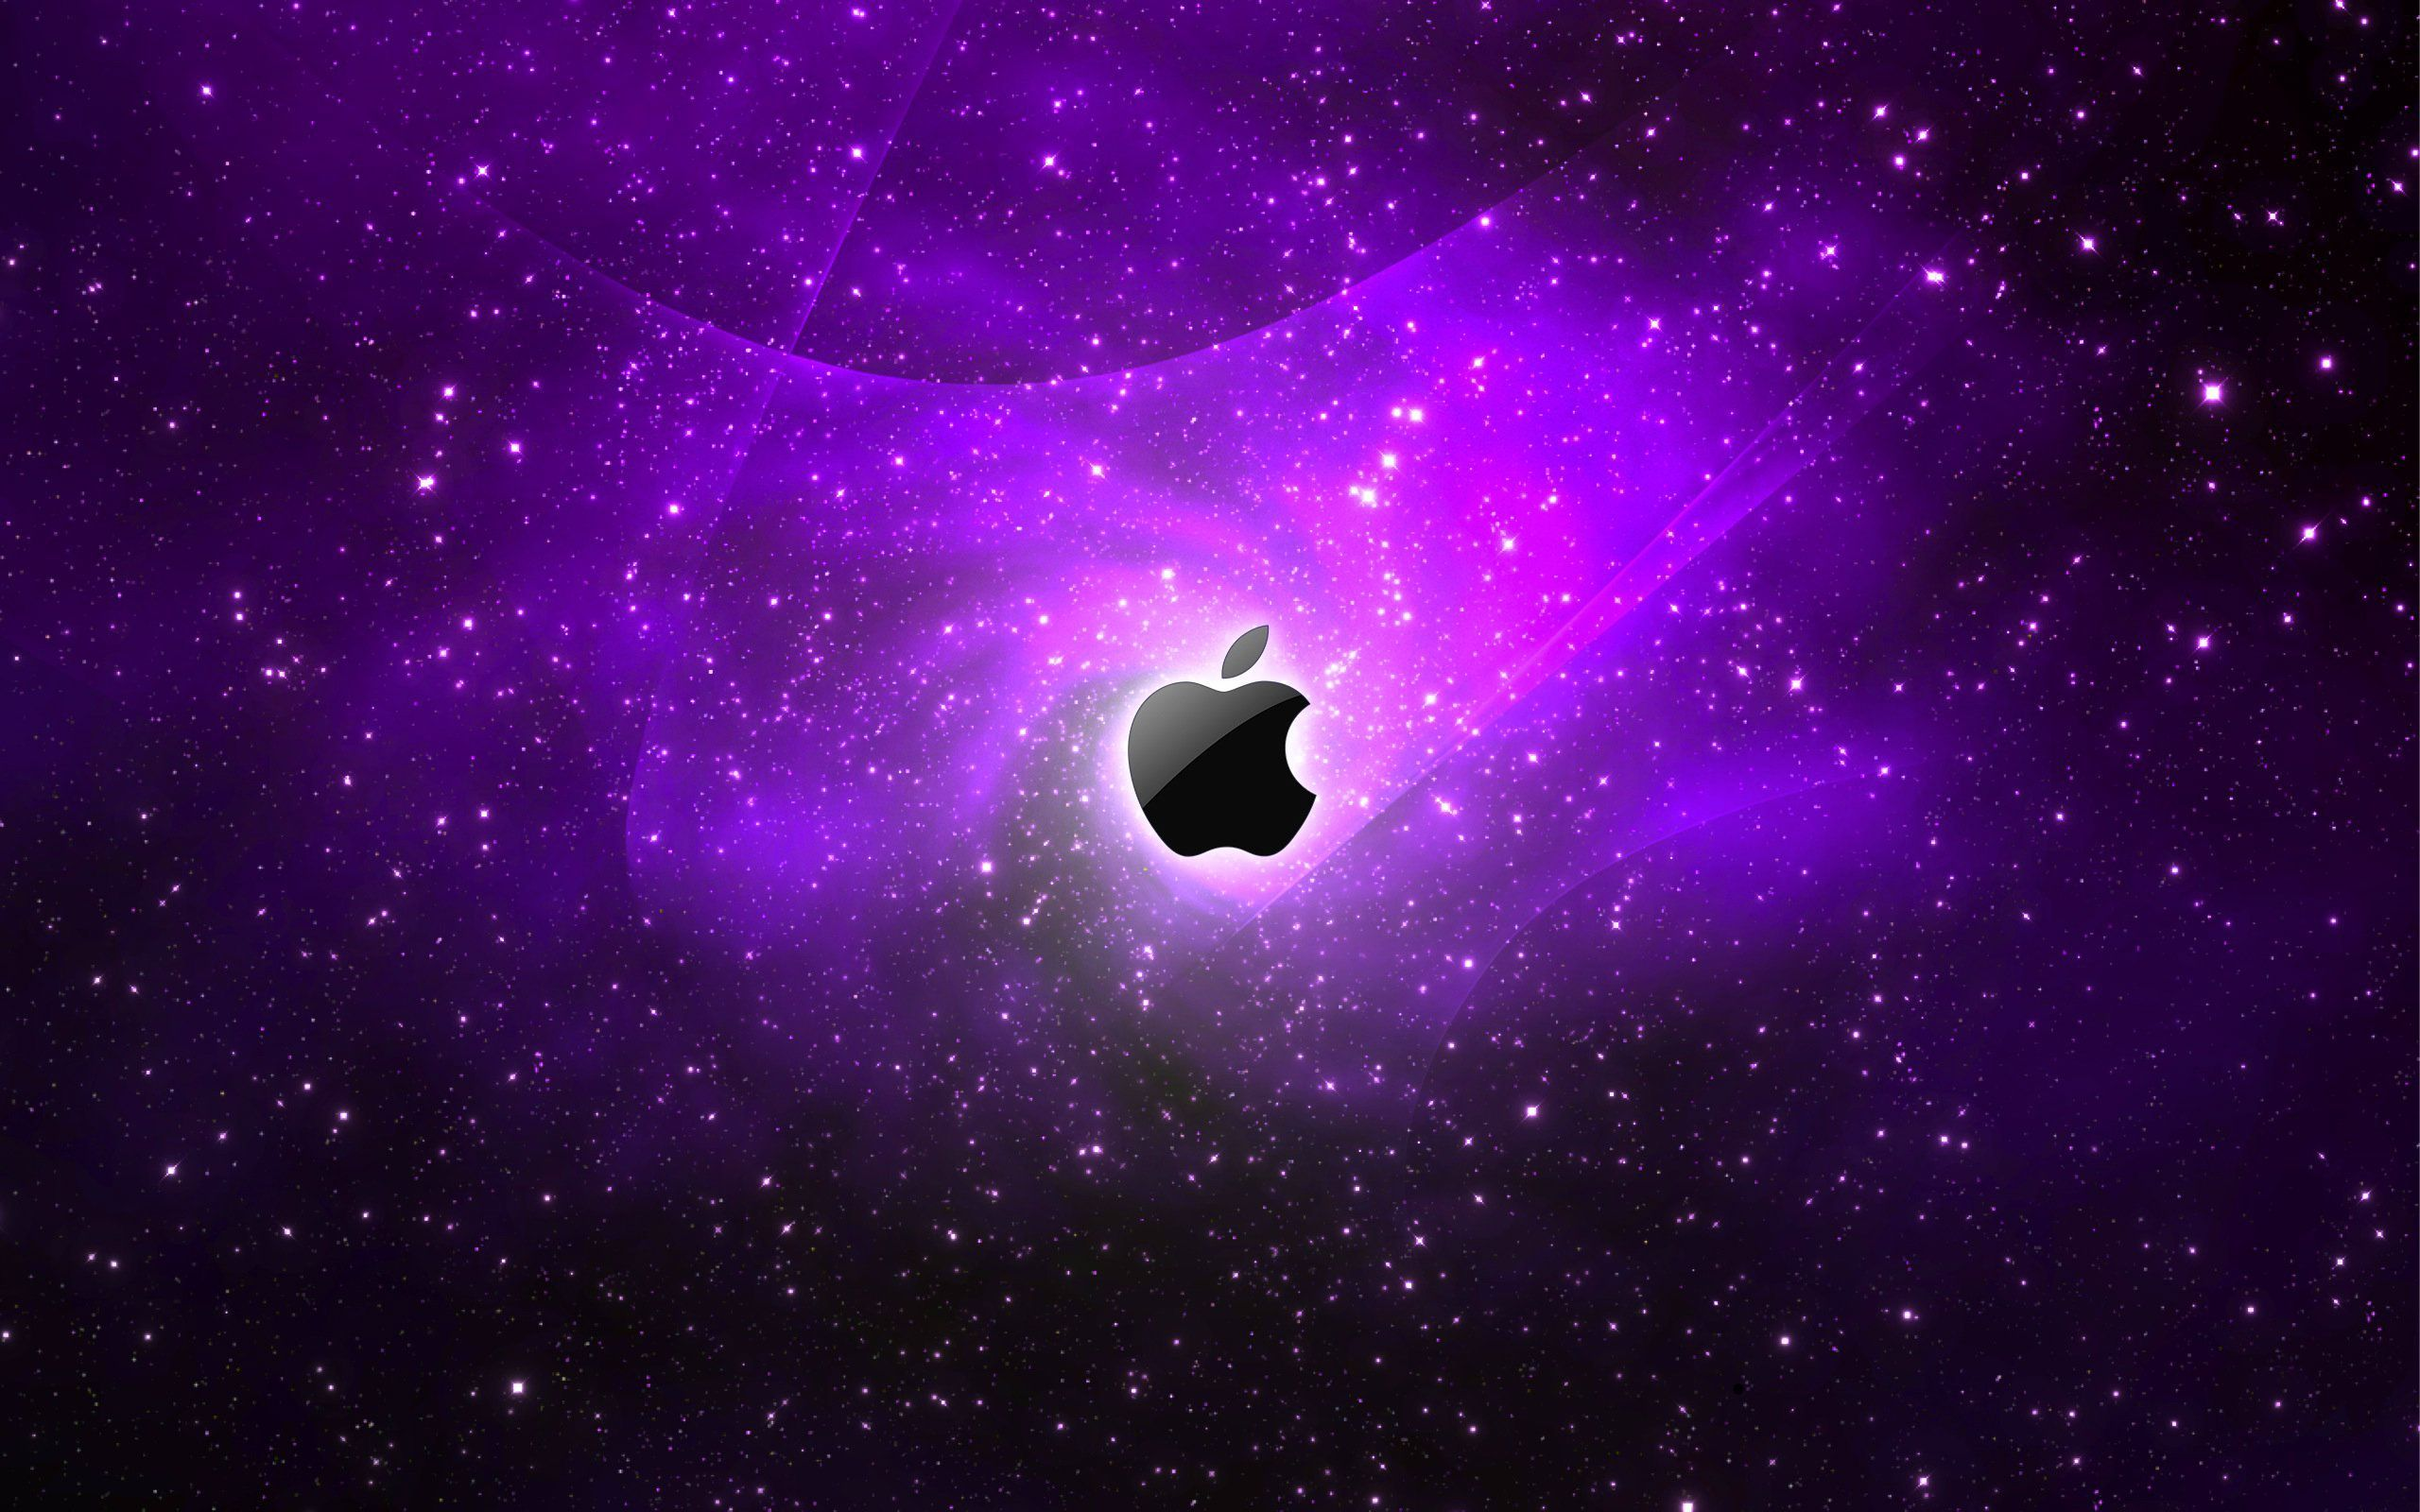 purple galaxy wallpapers desktop other wallpaper | wallpapers 4k